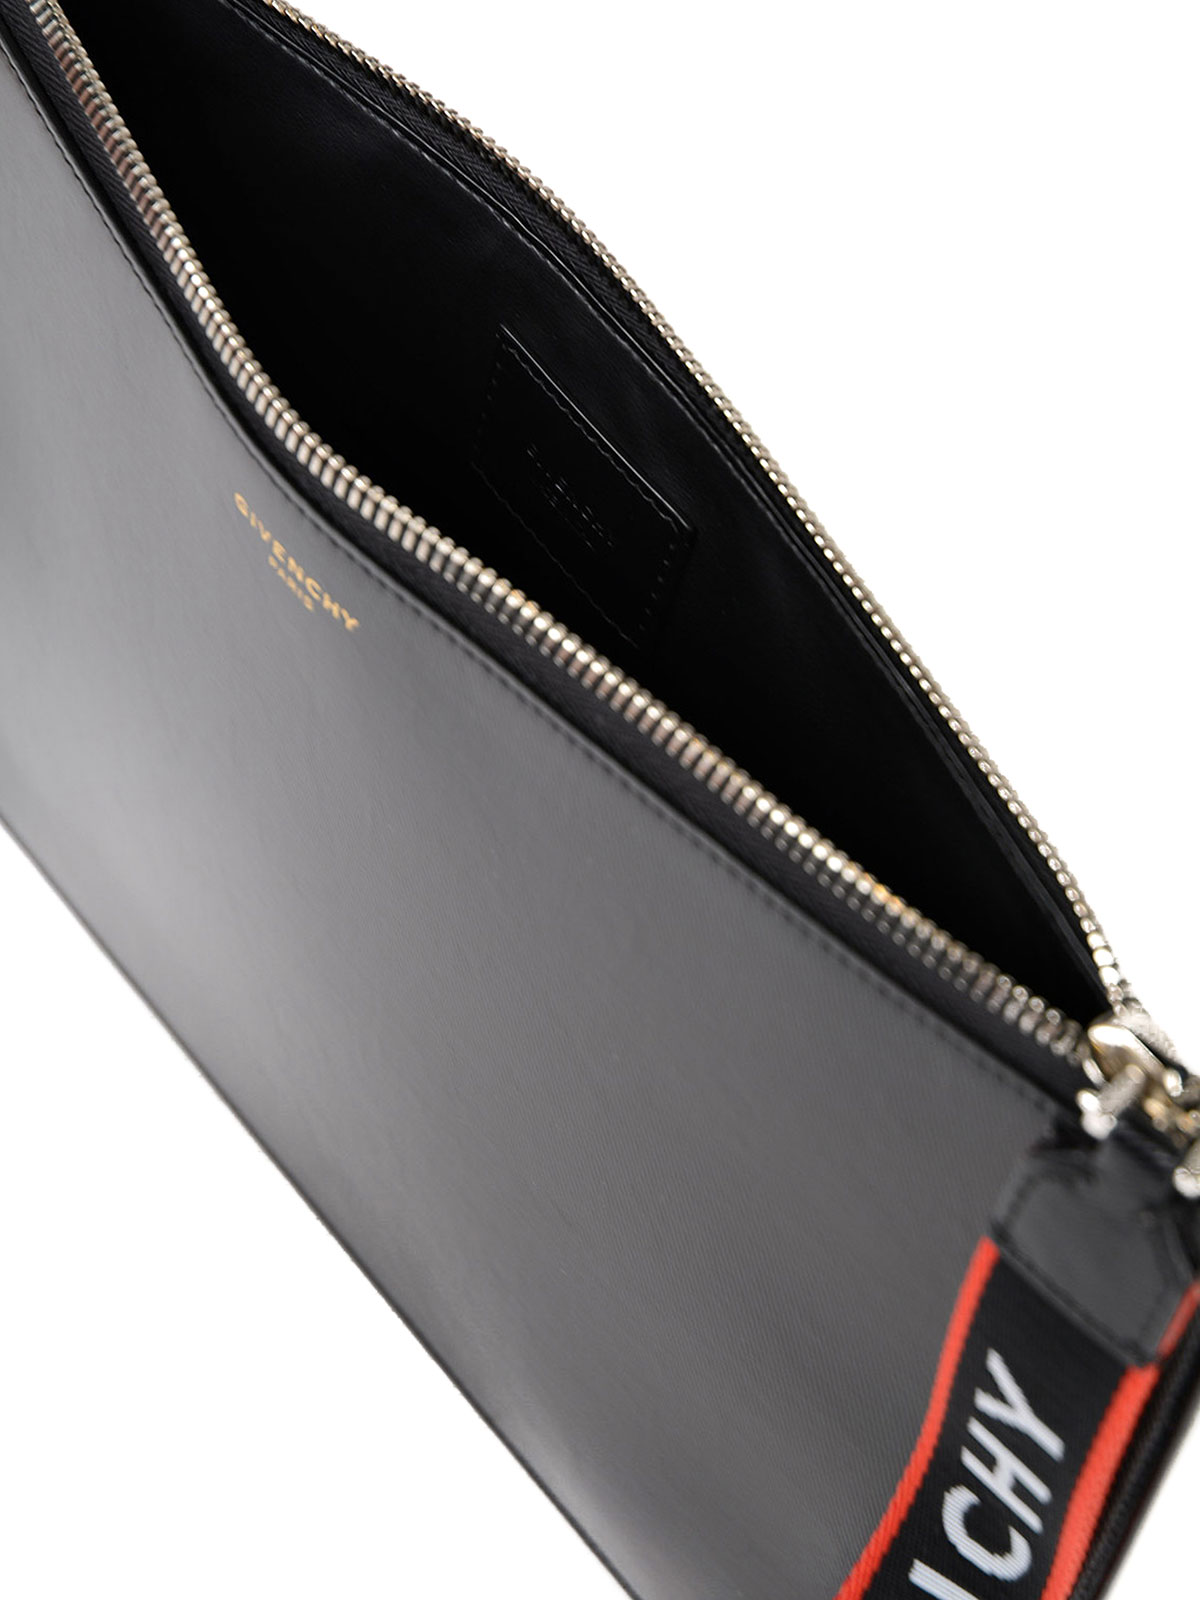 Givenchy - Logo wristlet leather pouch